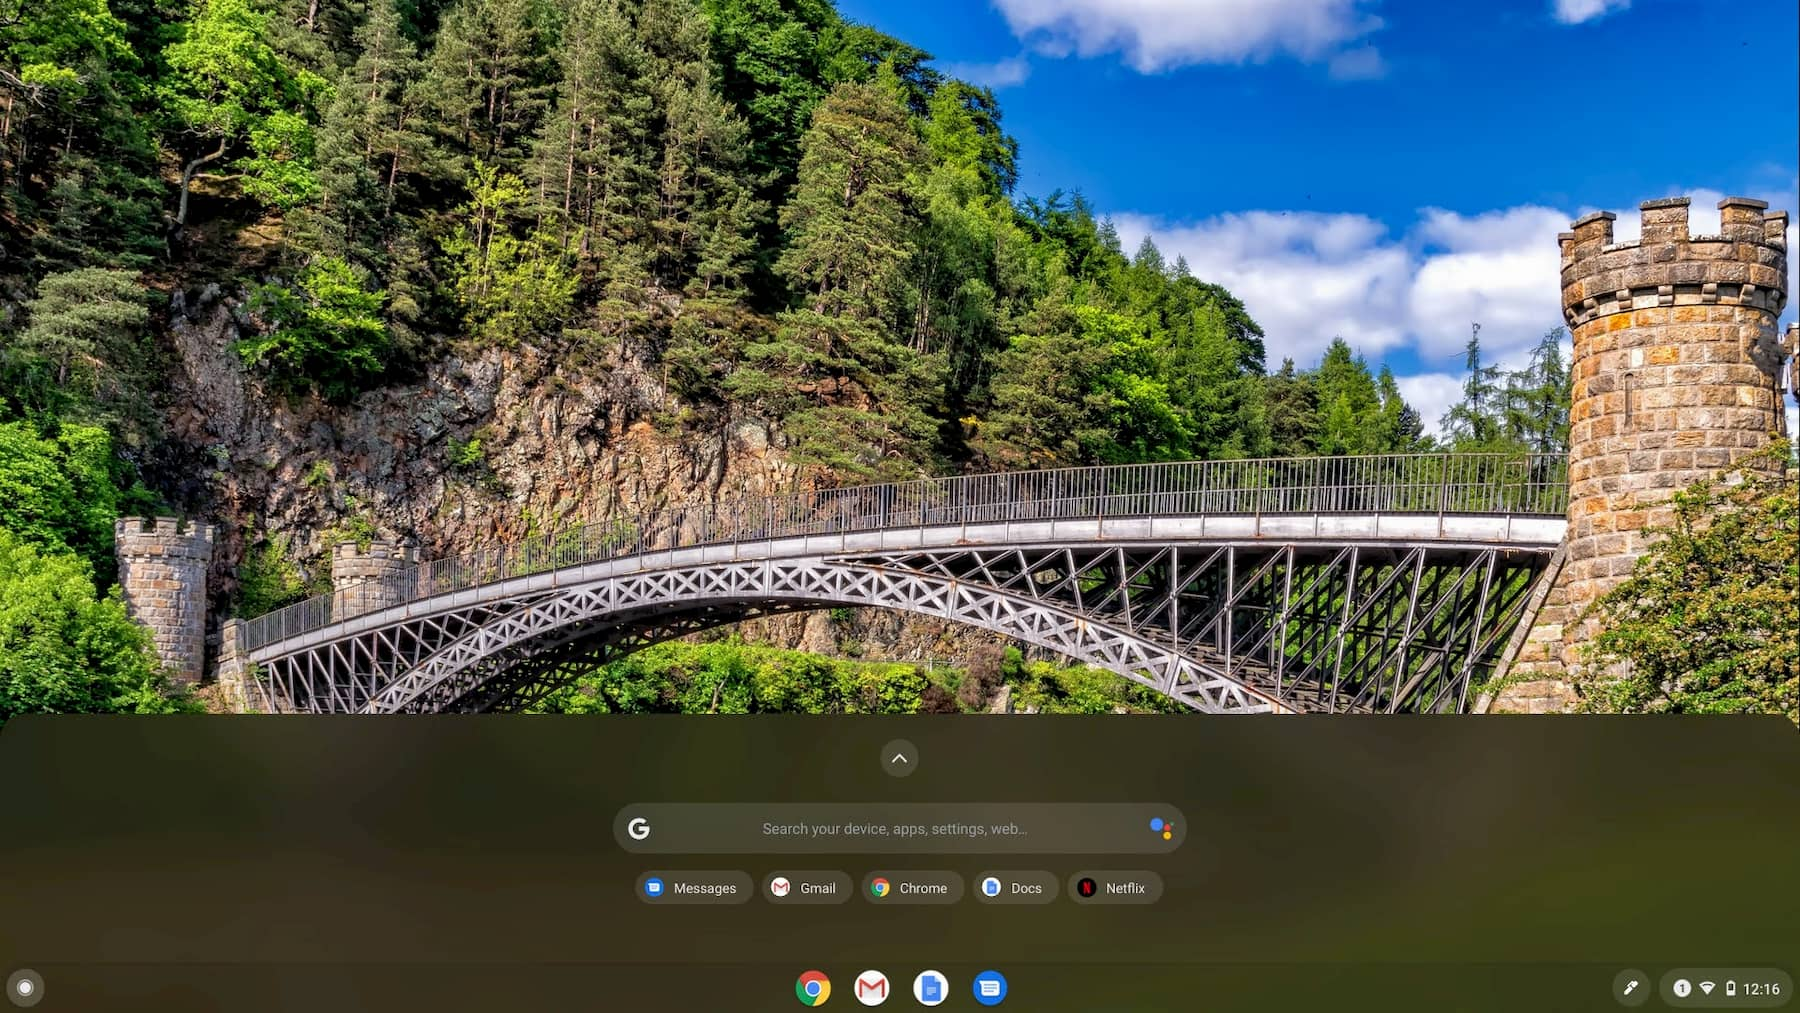 The standard Chromebook theme is getting darker in preparation for light theme